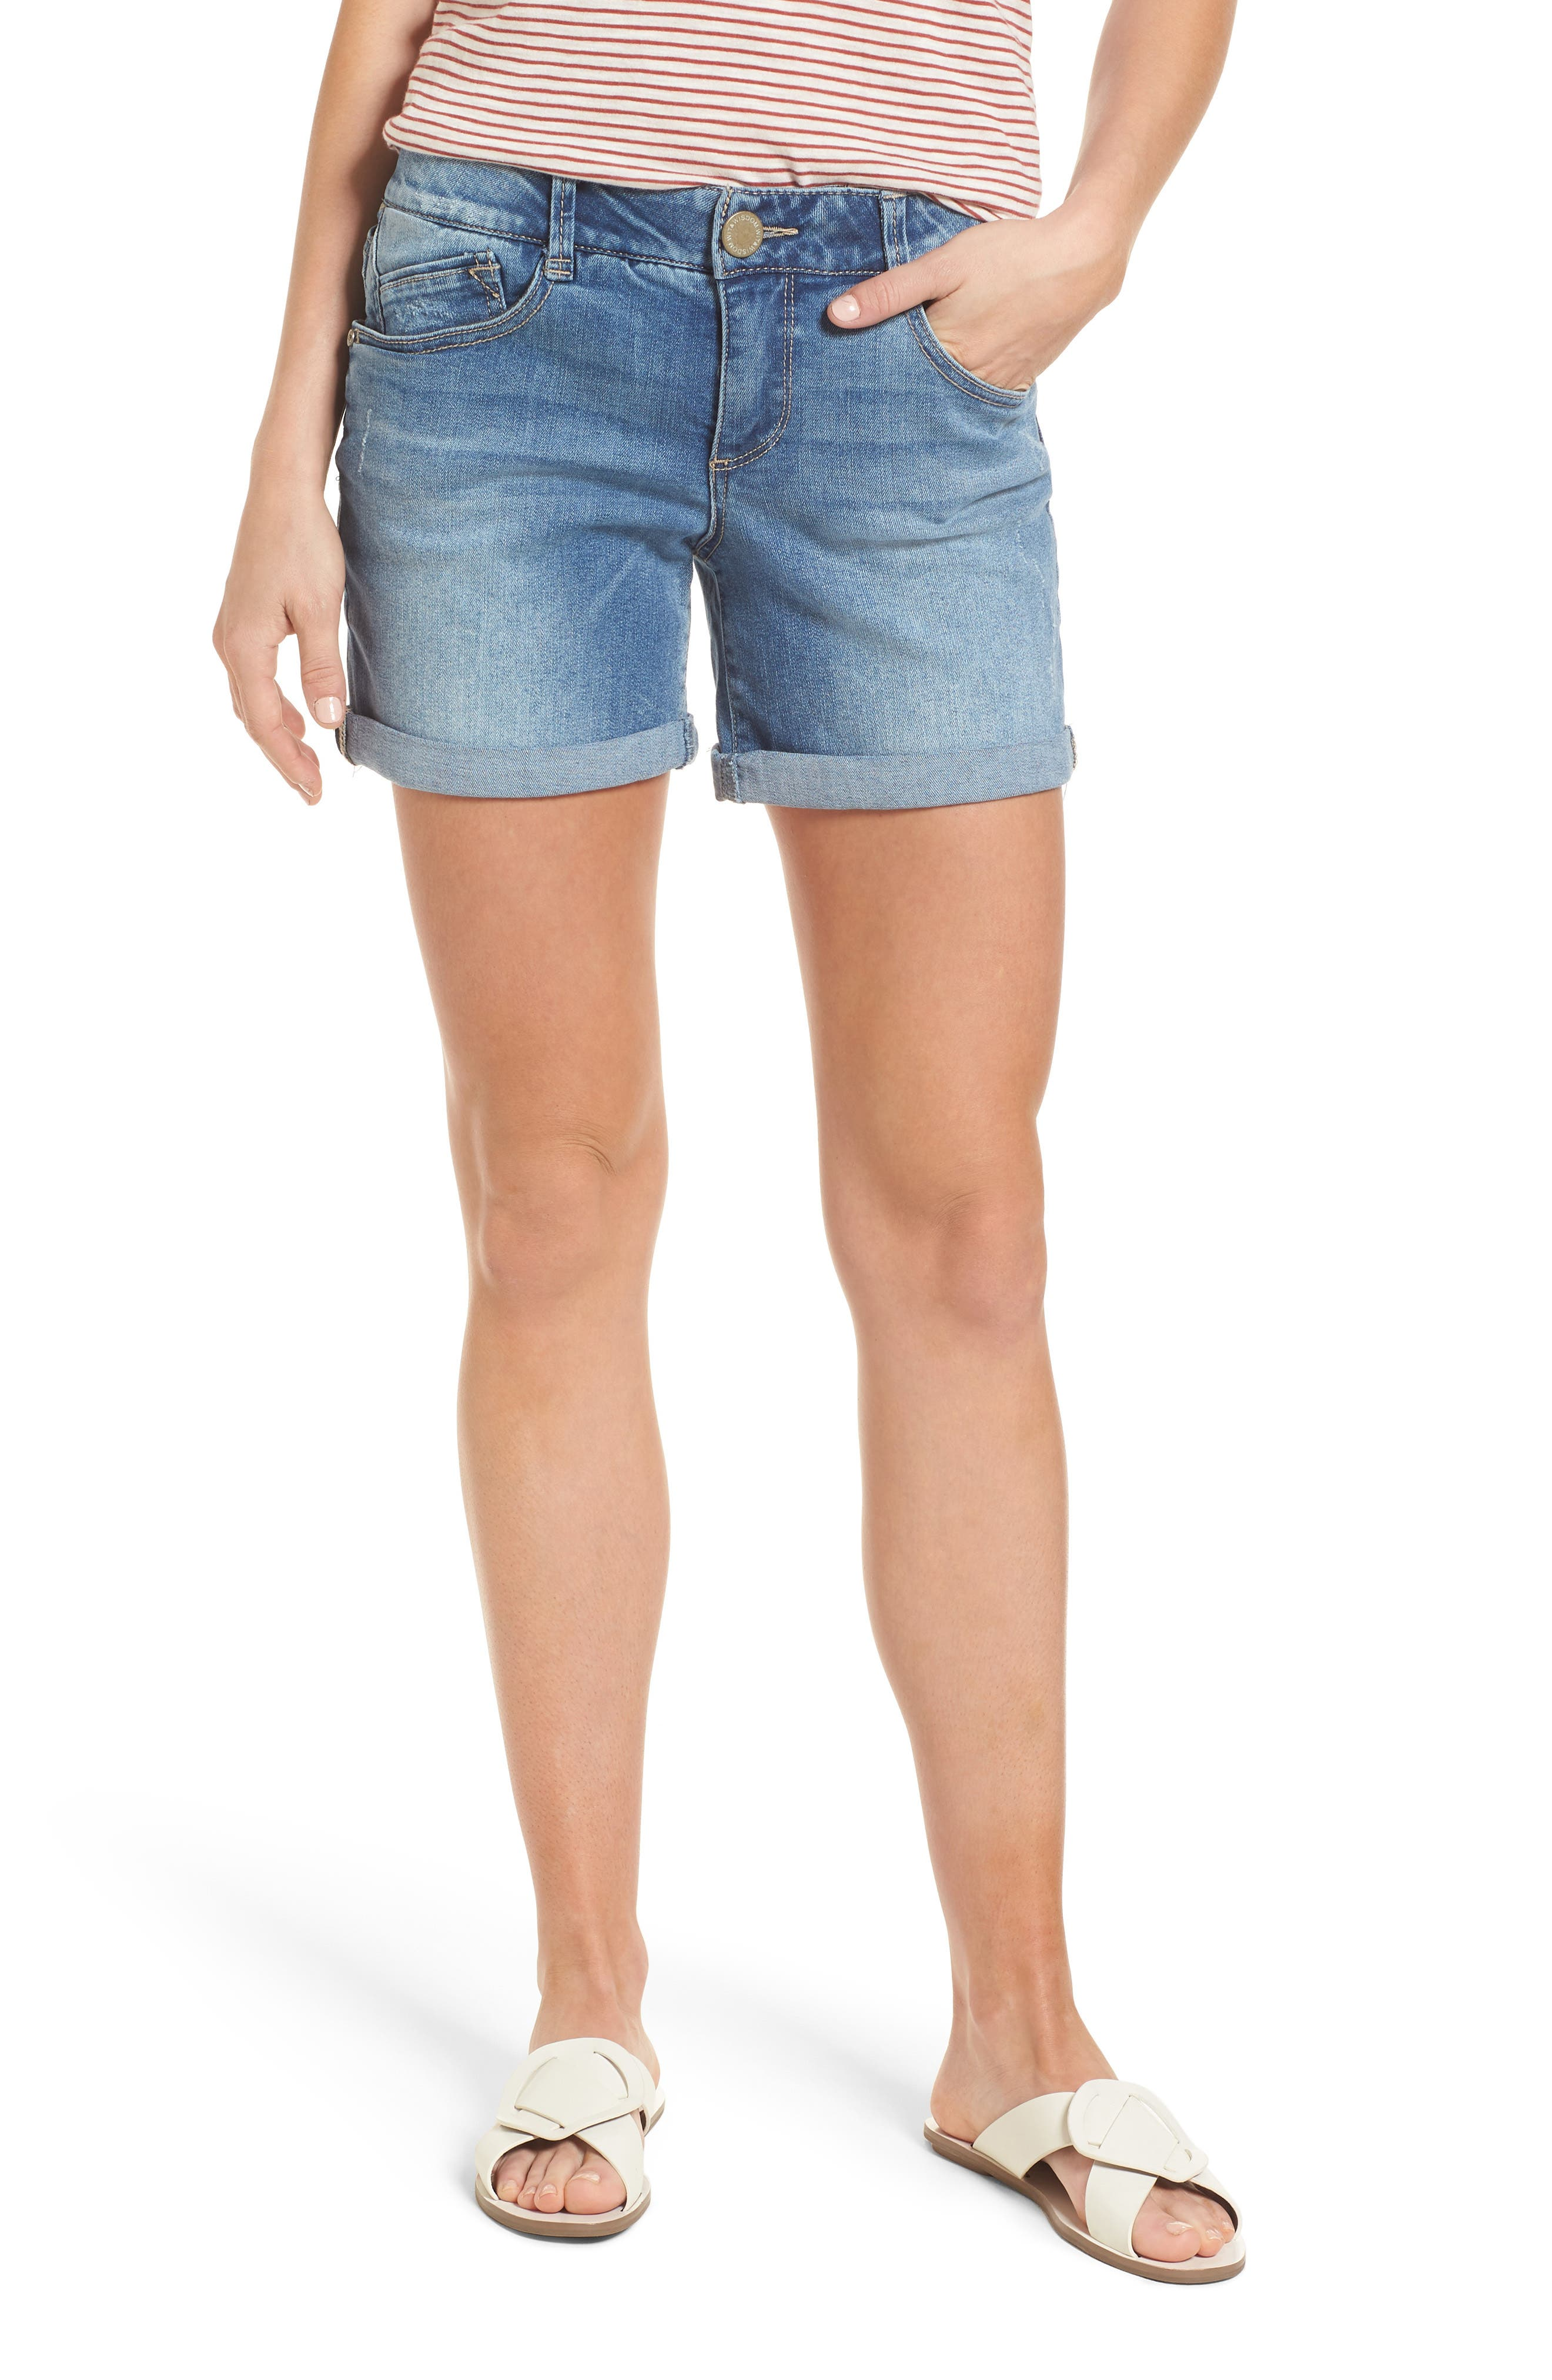 Ab-solution Denim Shorts,                         Main,                         color, Light Blue